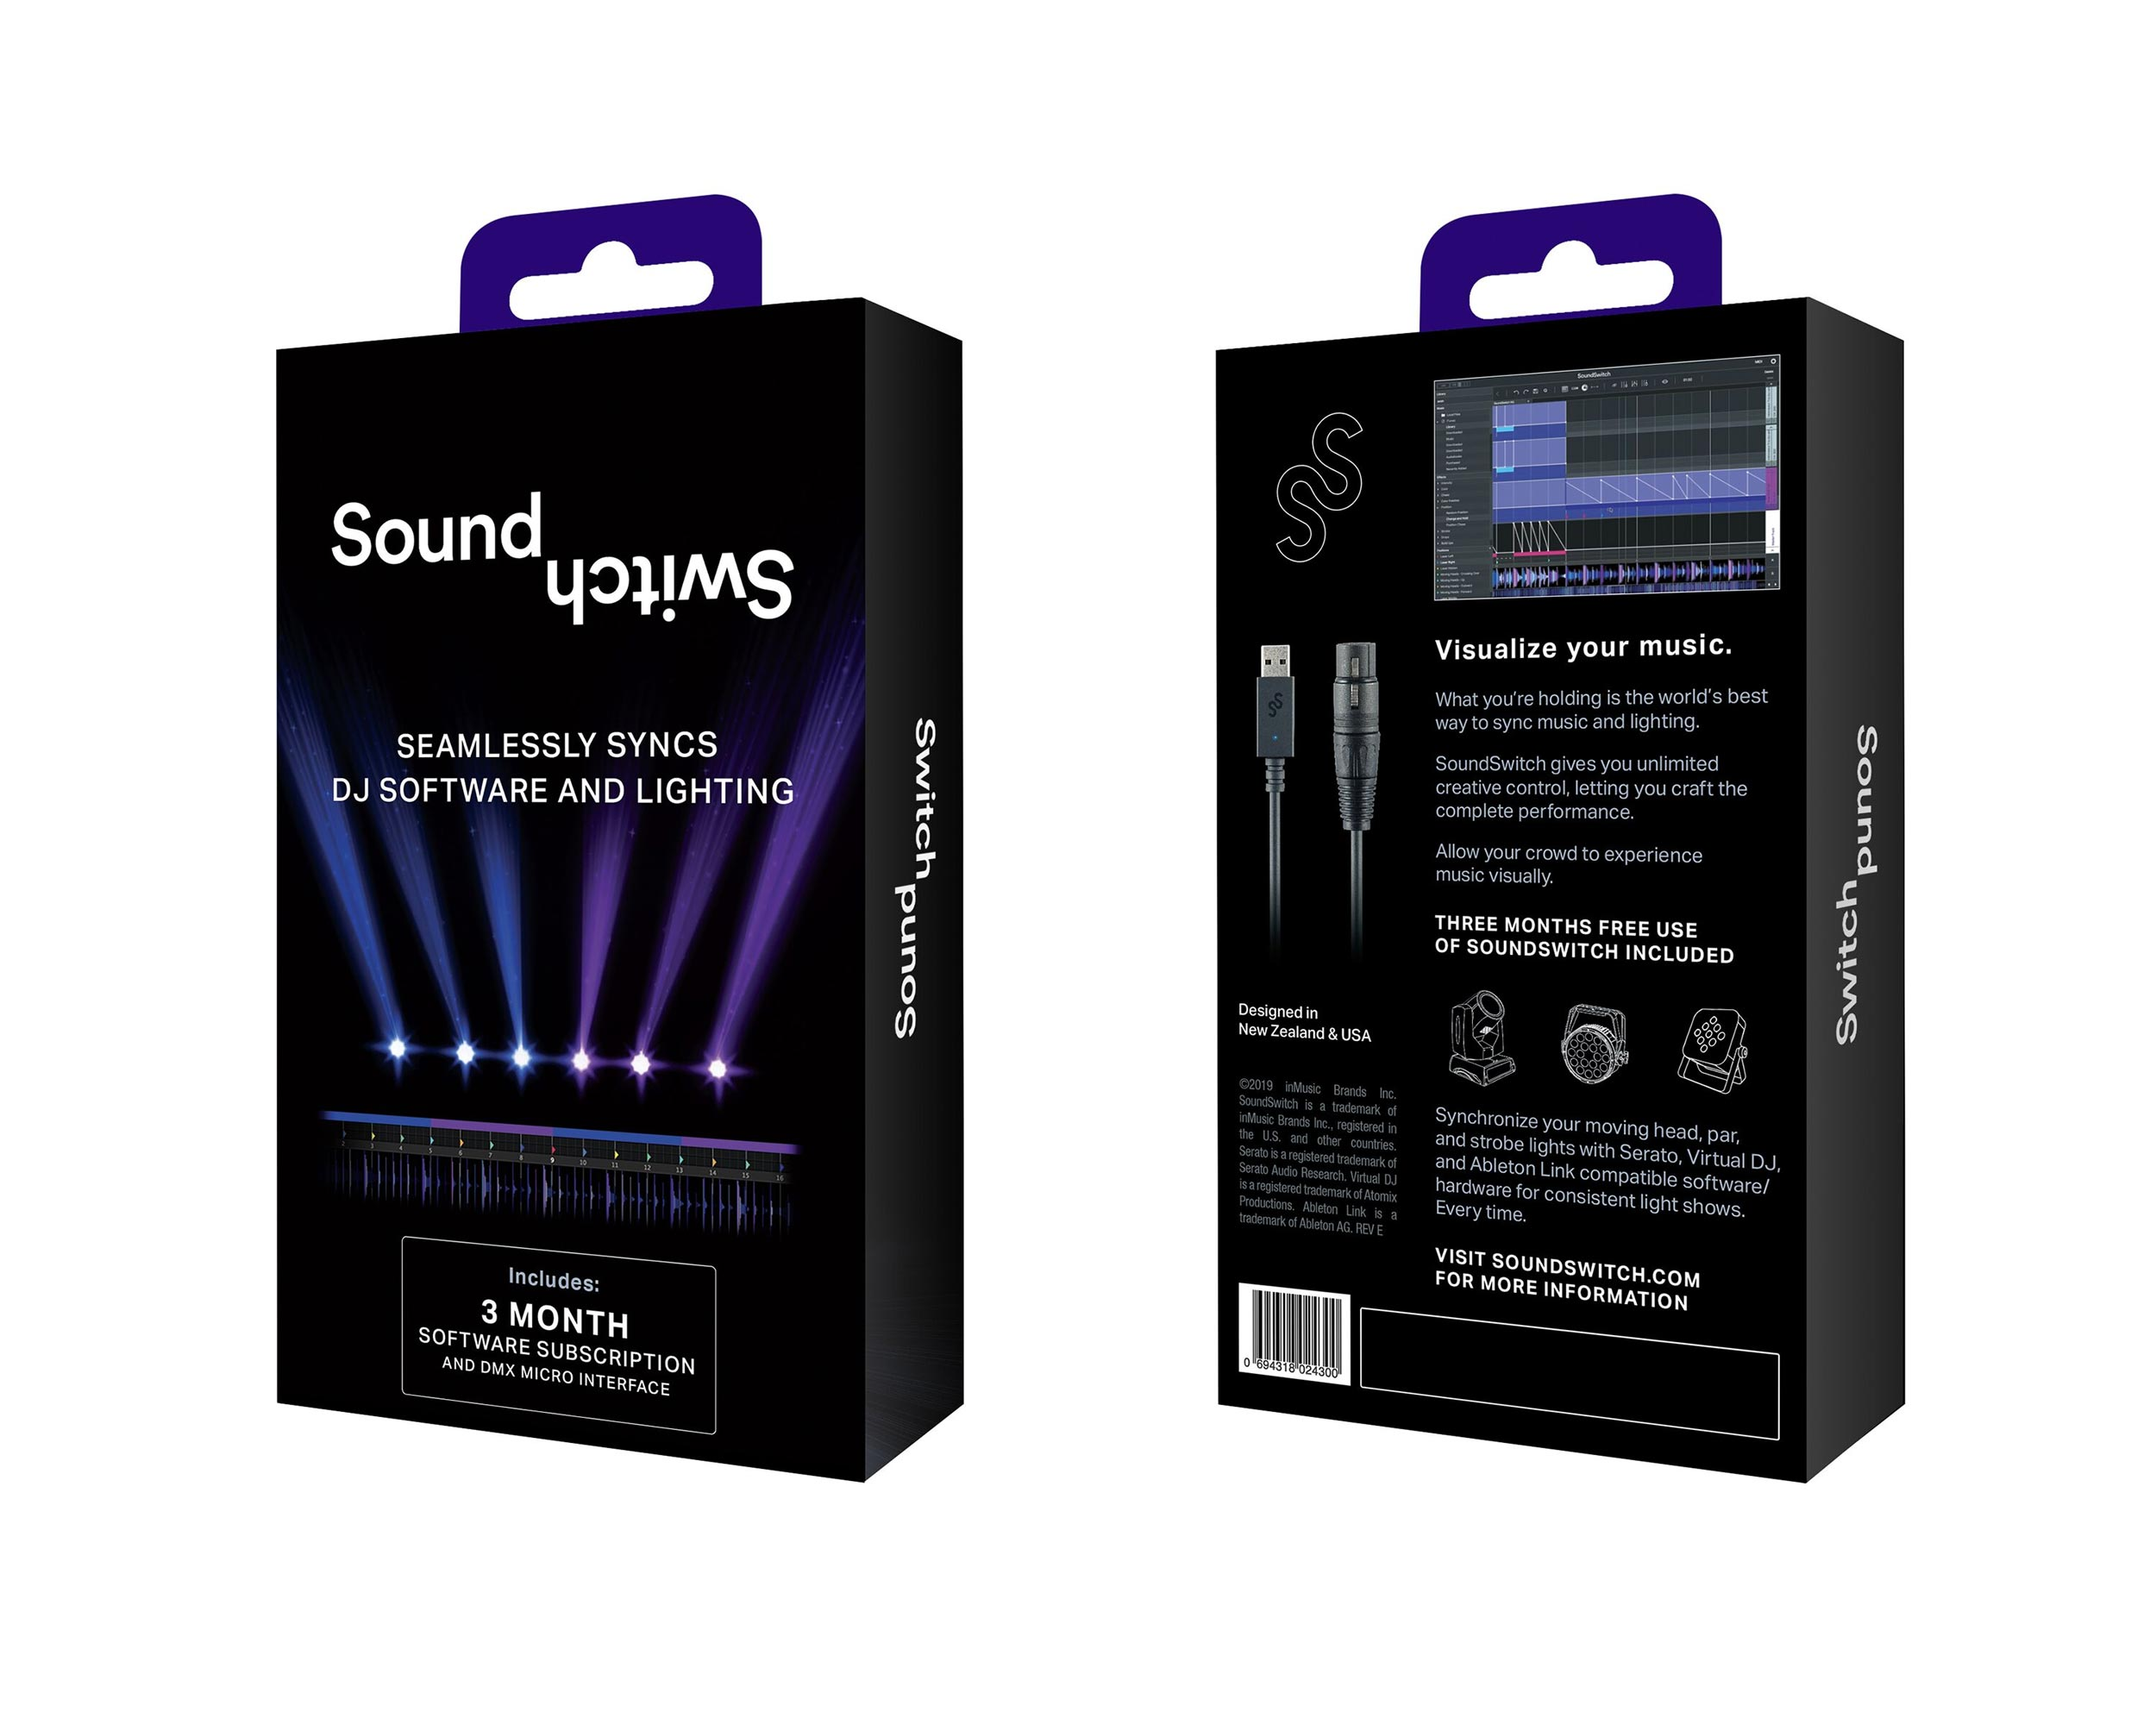 SoundSwitch Micro-DMX Interface